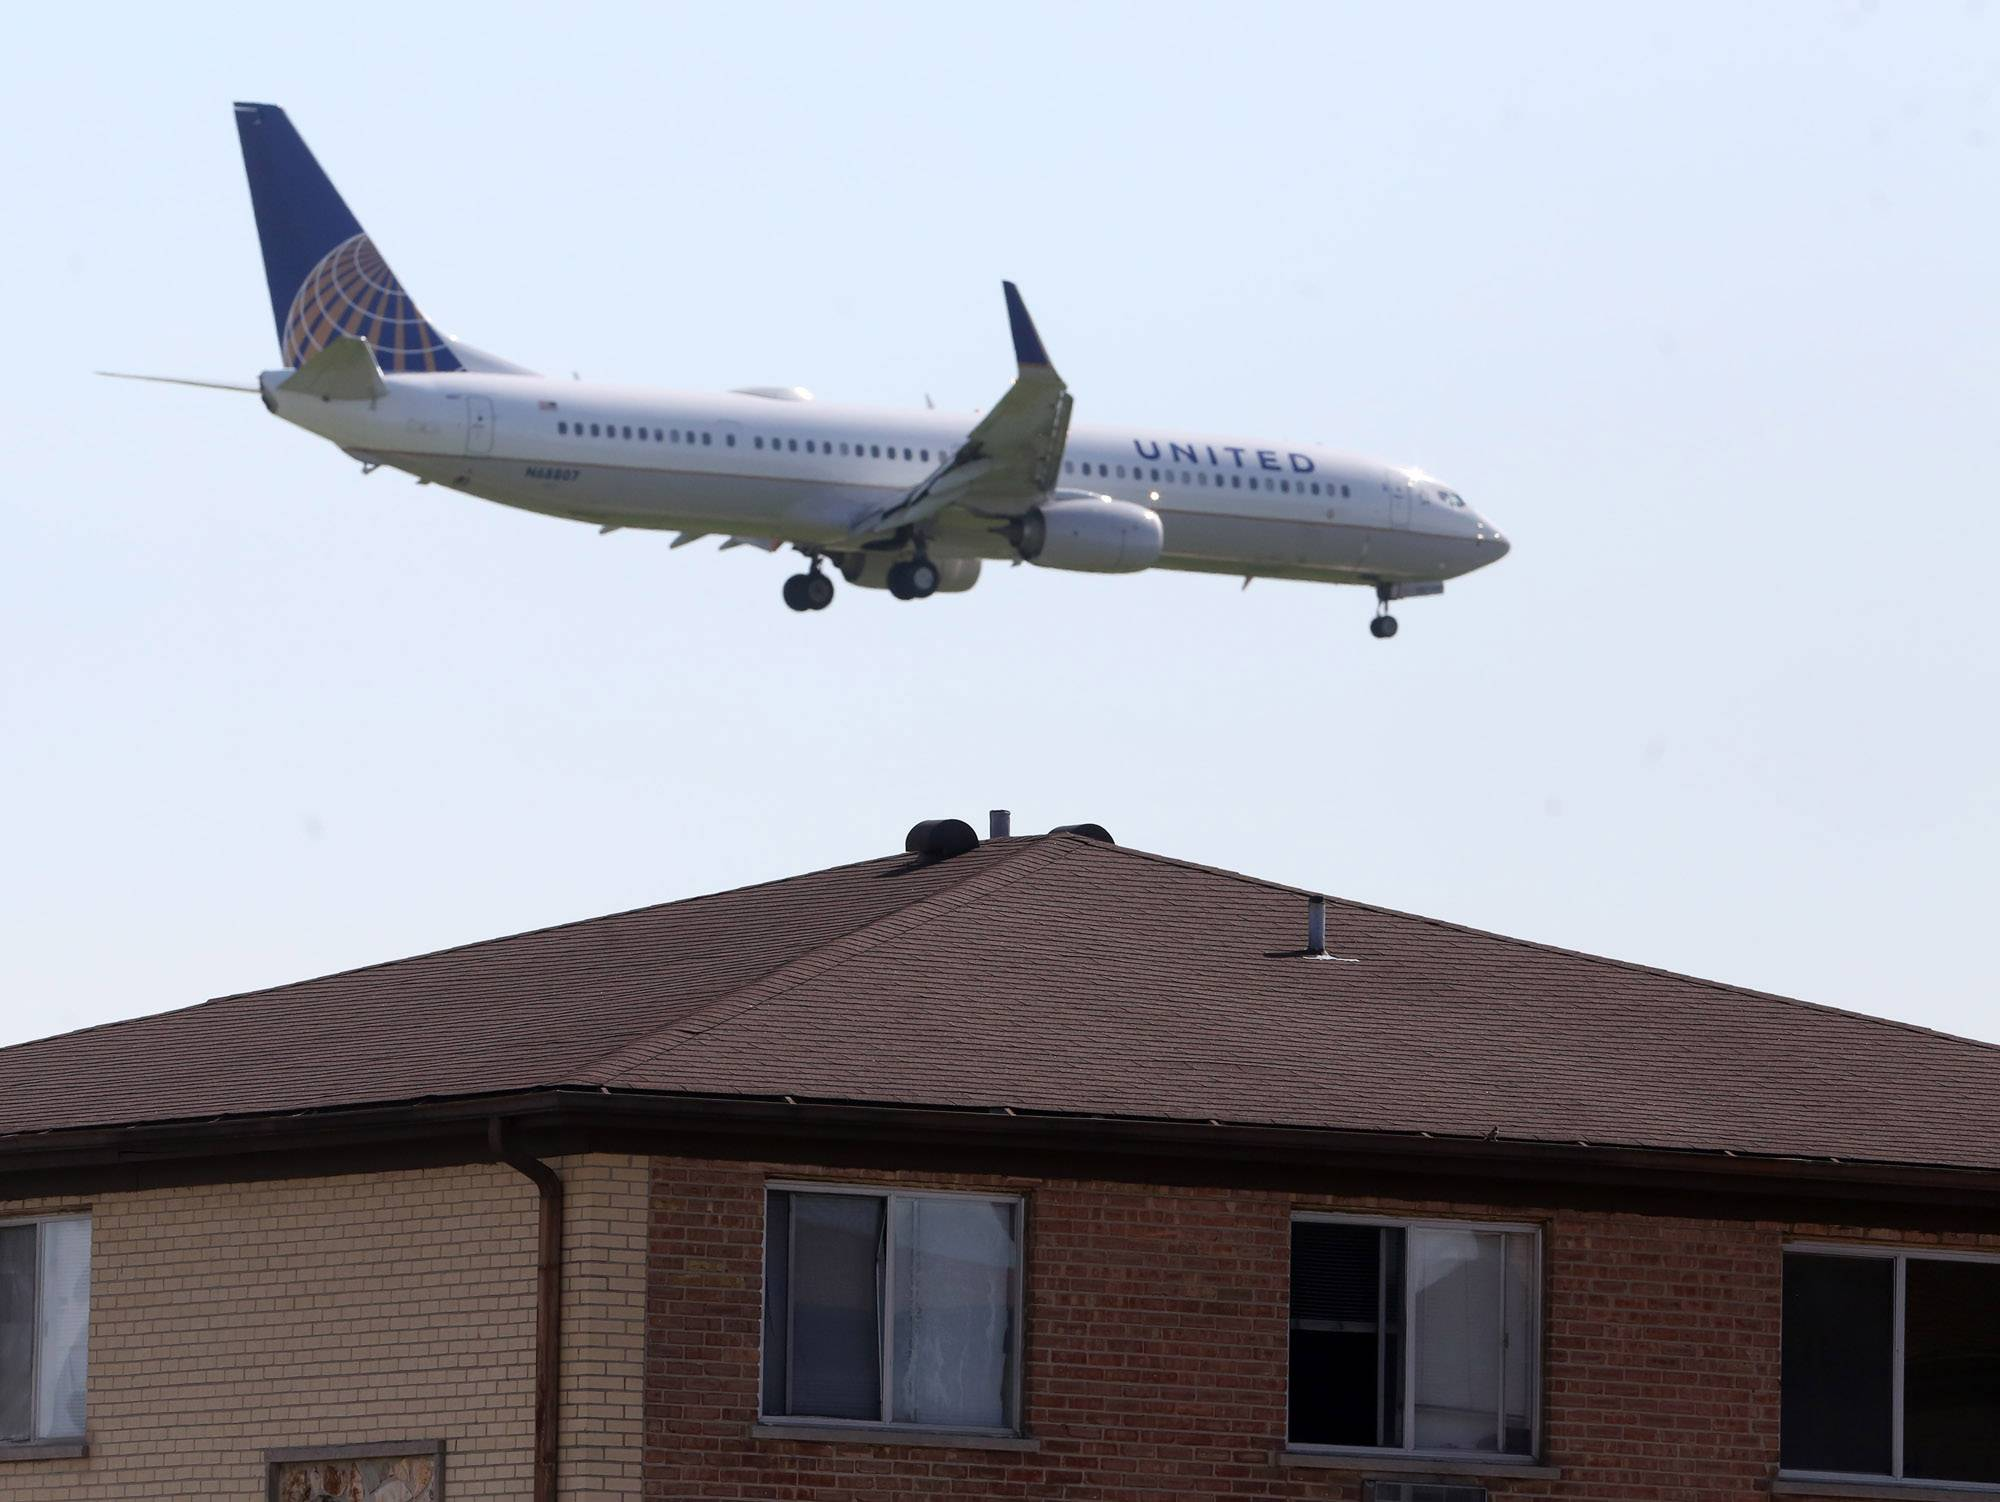 New runway could mean more jet noise for some in suburbs